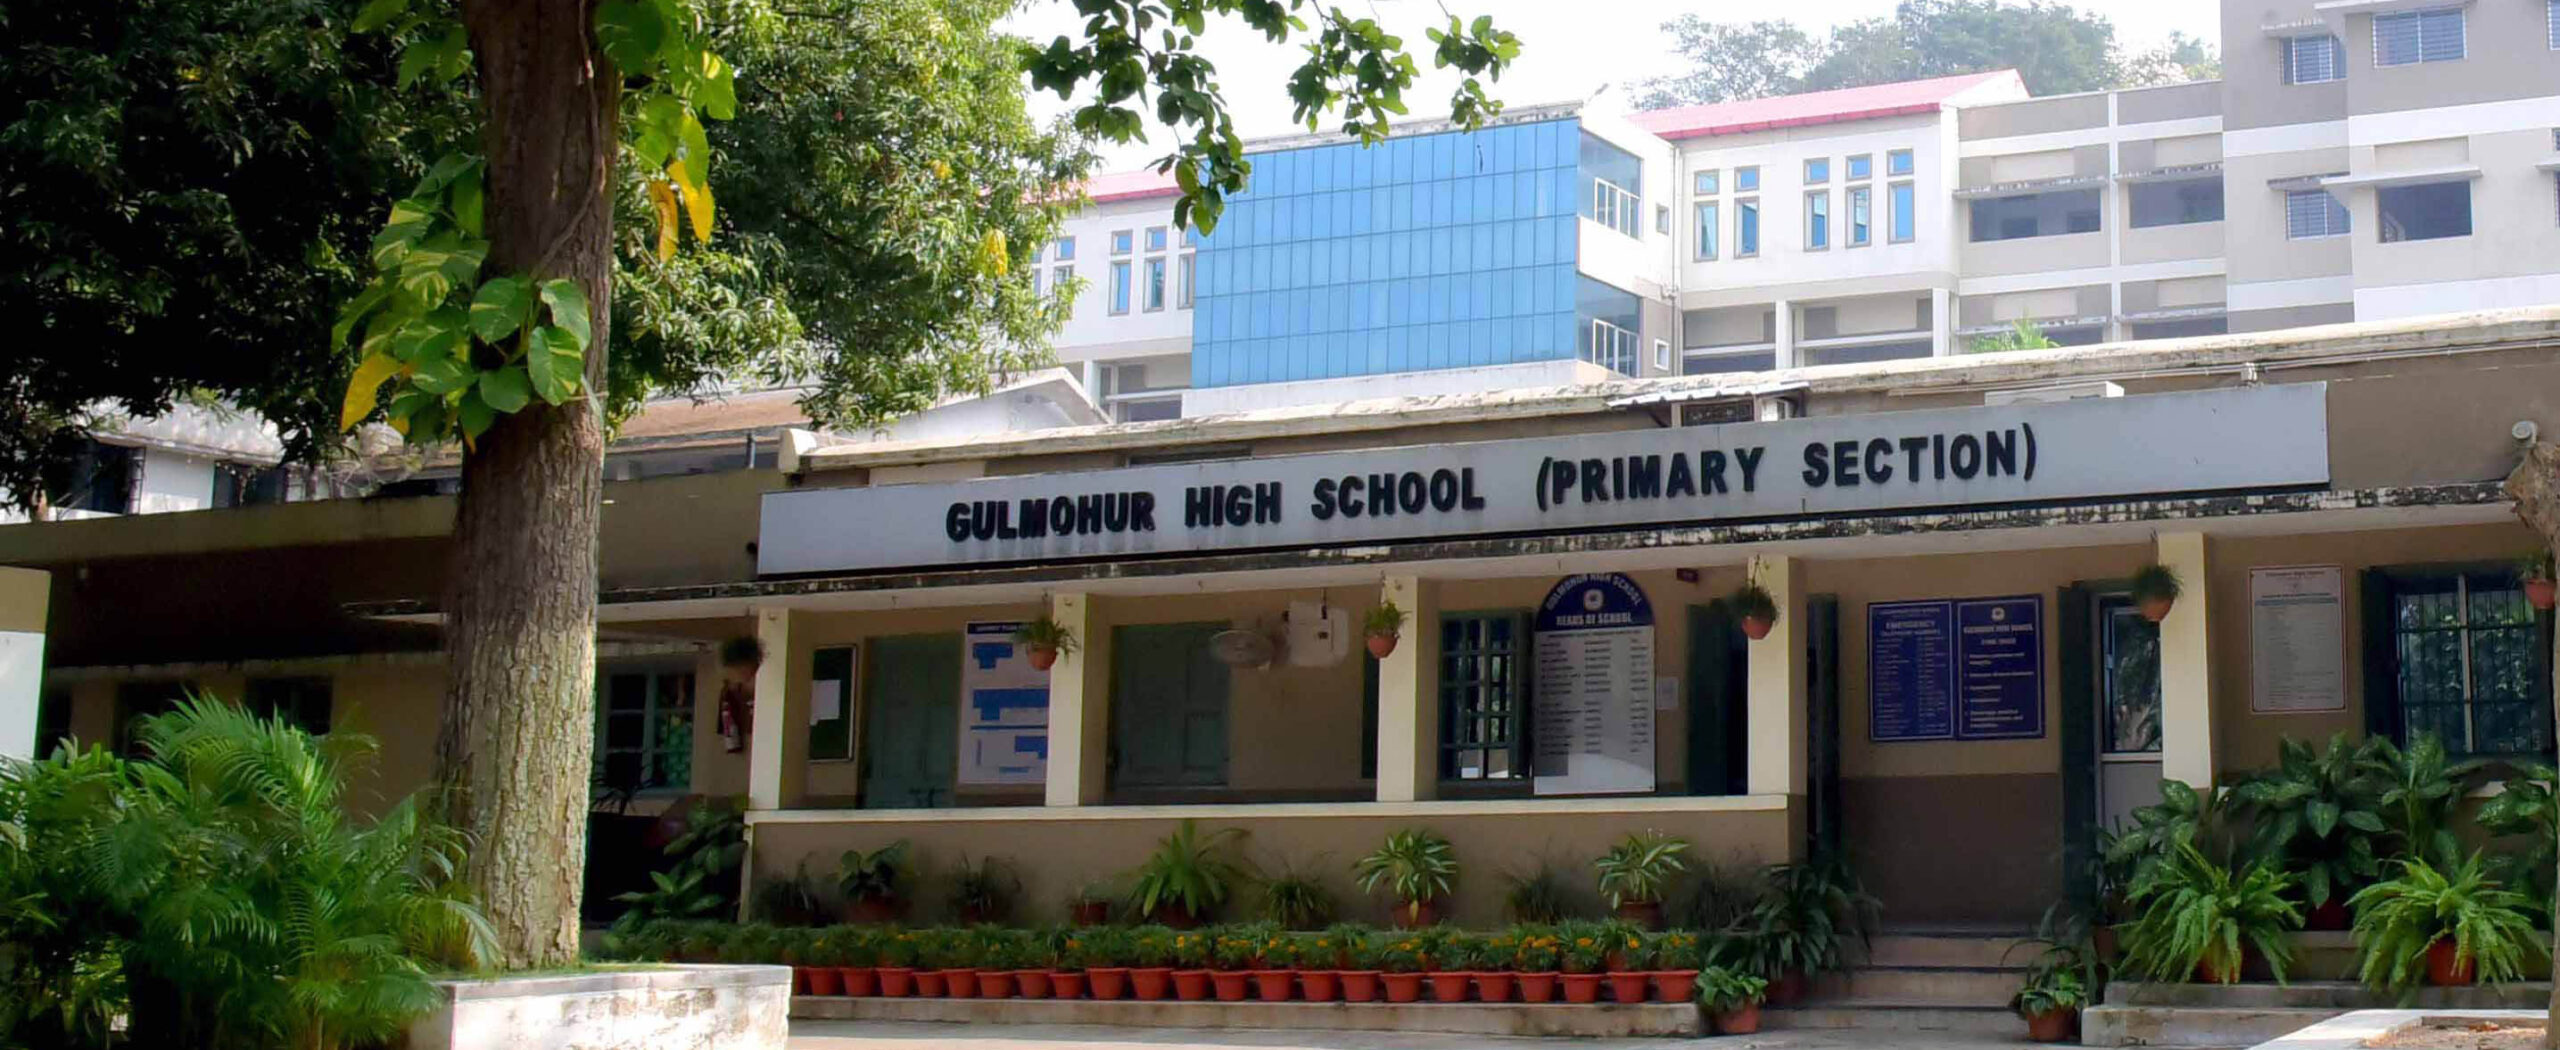 PRIMARY SECTION BUILDING